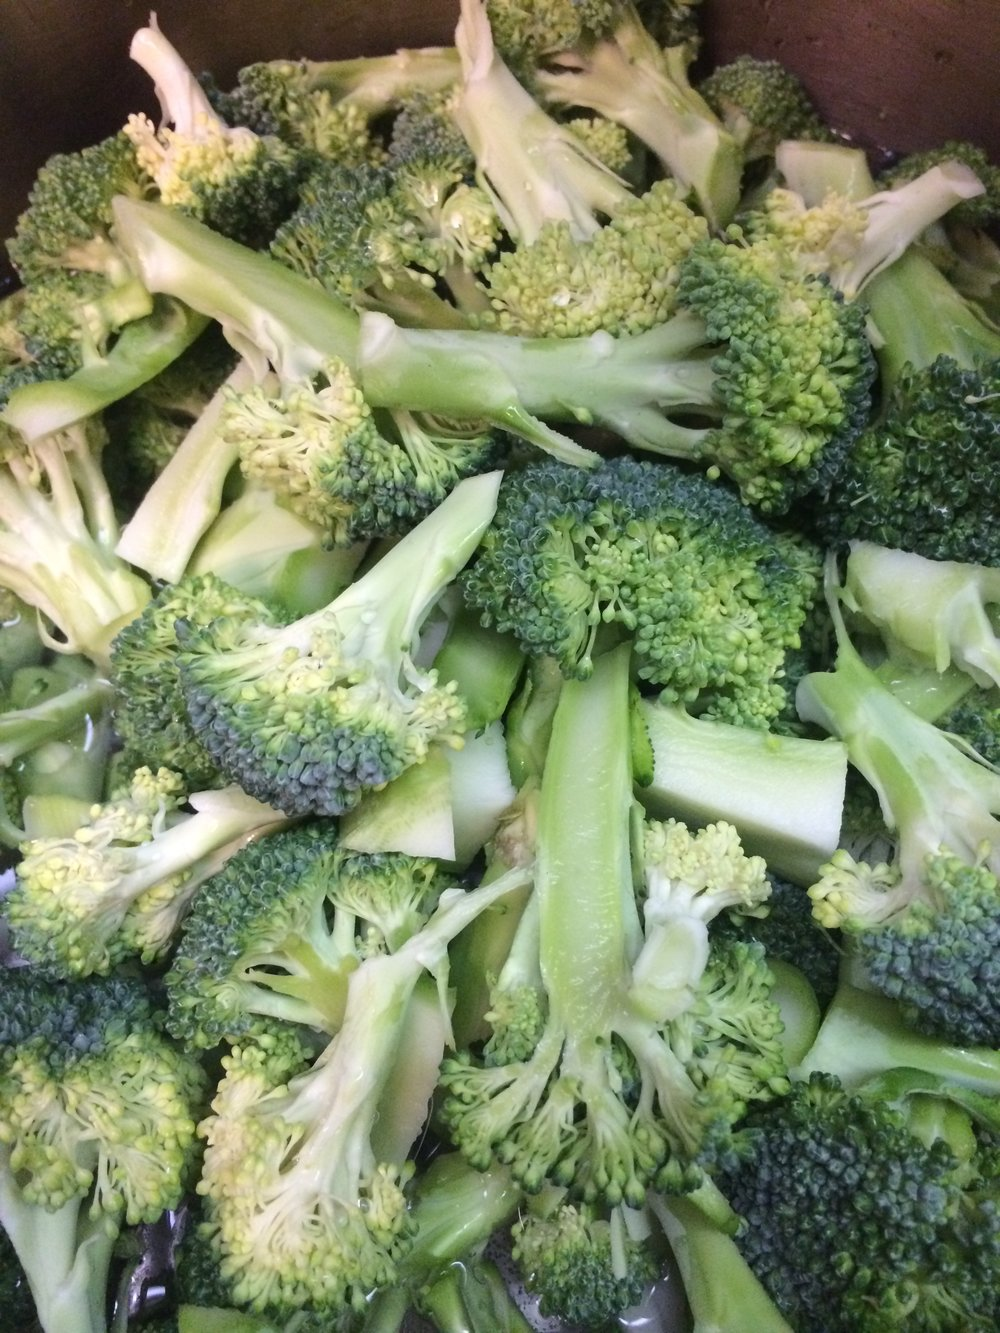 Raw, chopped broccoli before blanching